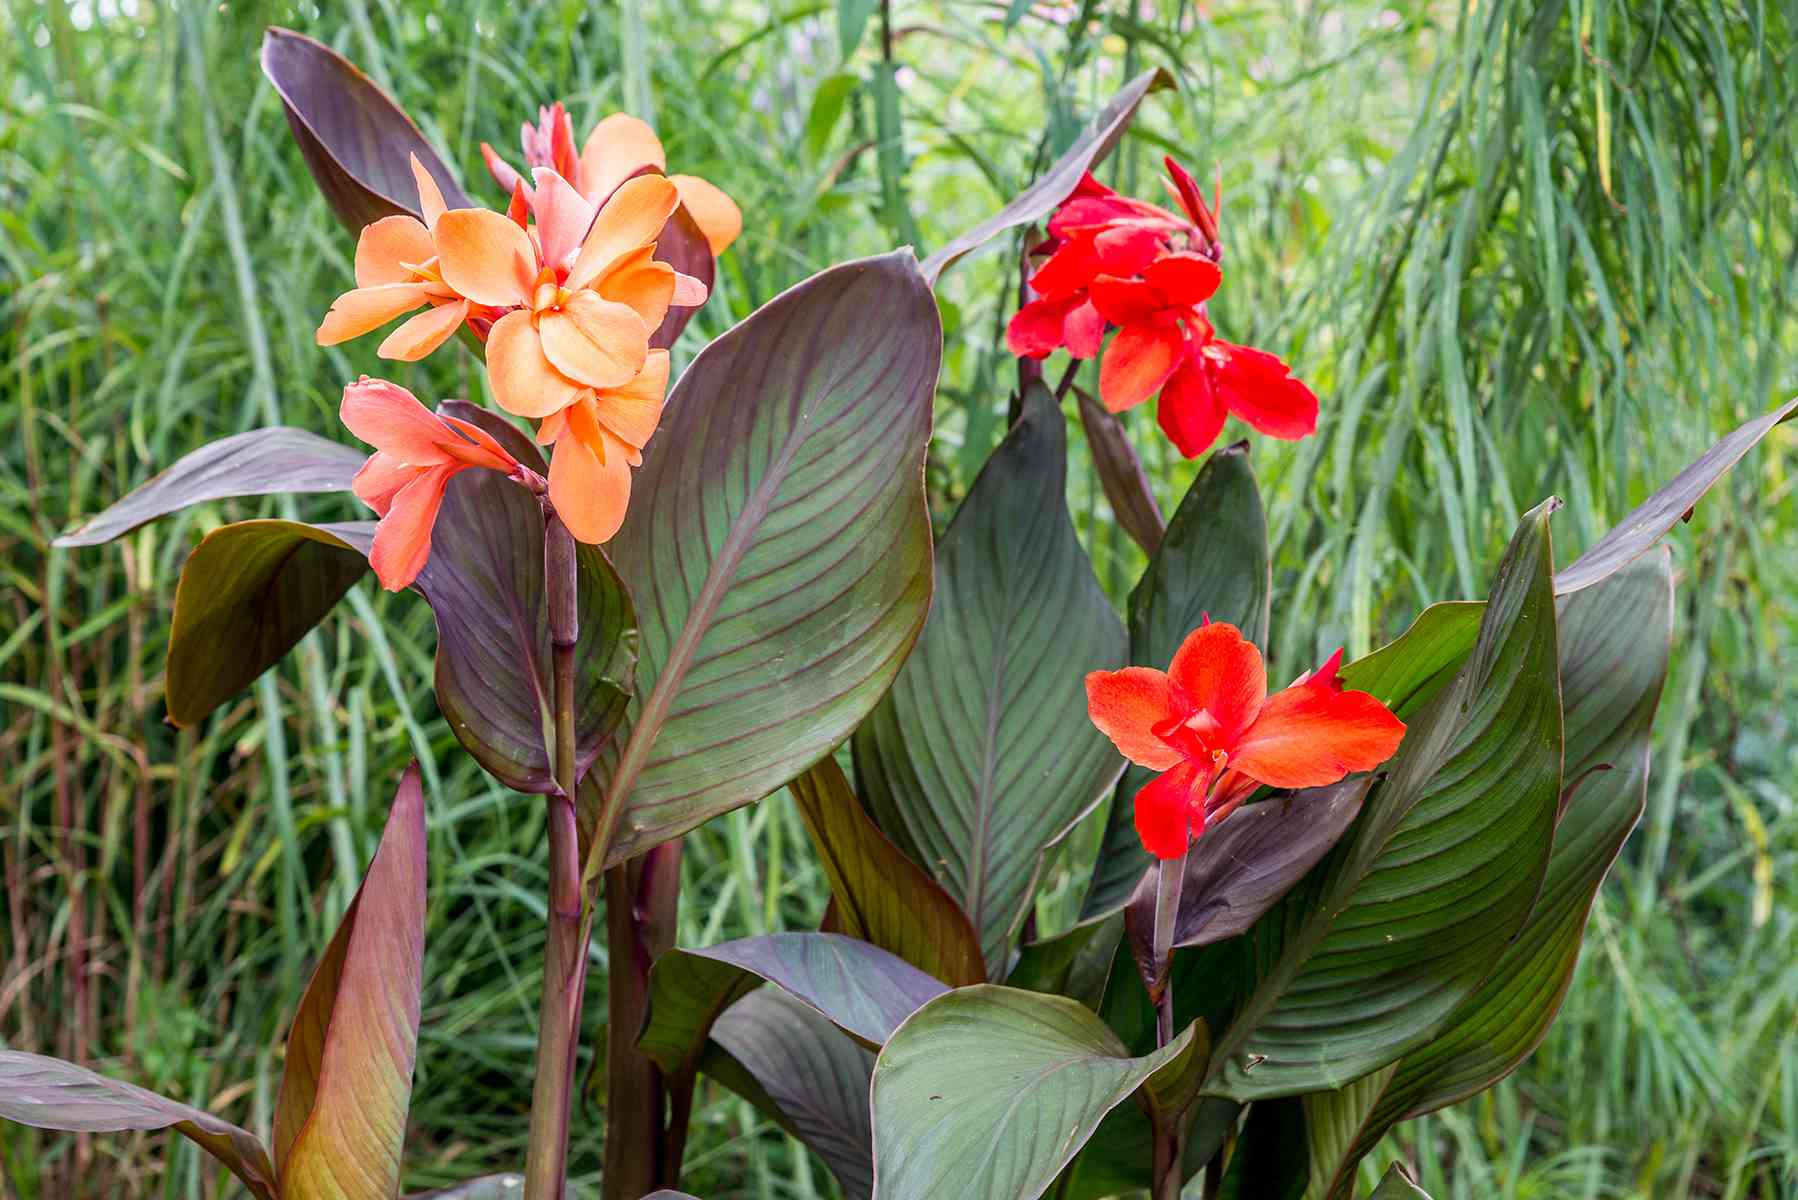 orange and red canna lilies